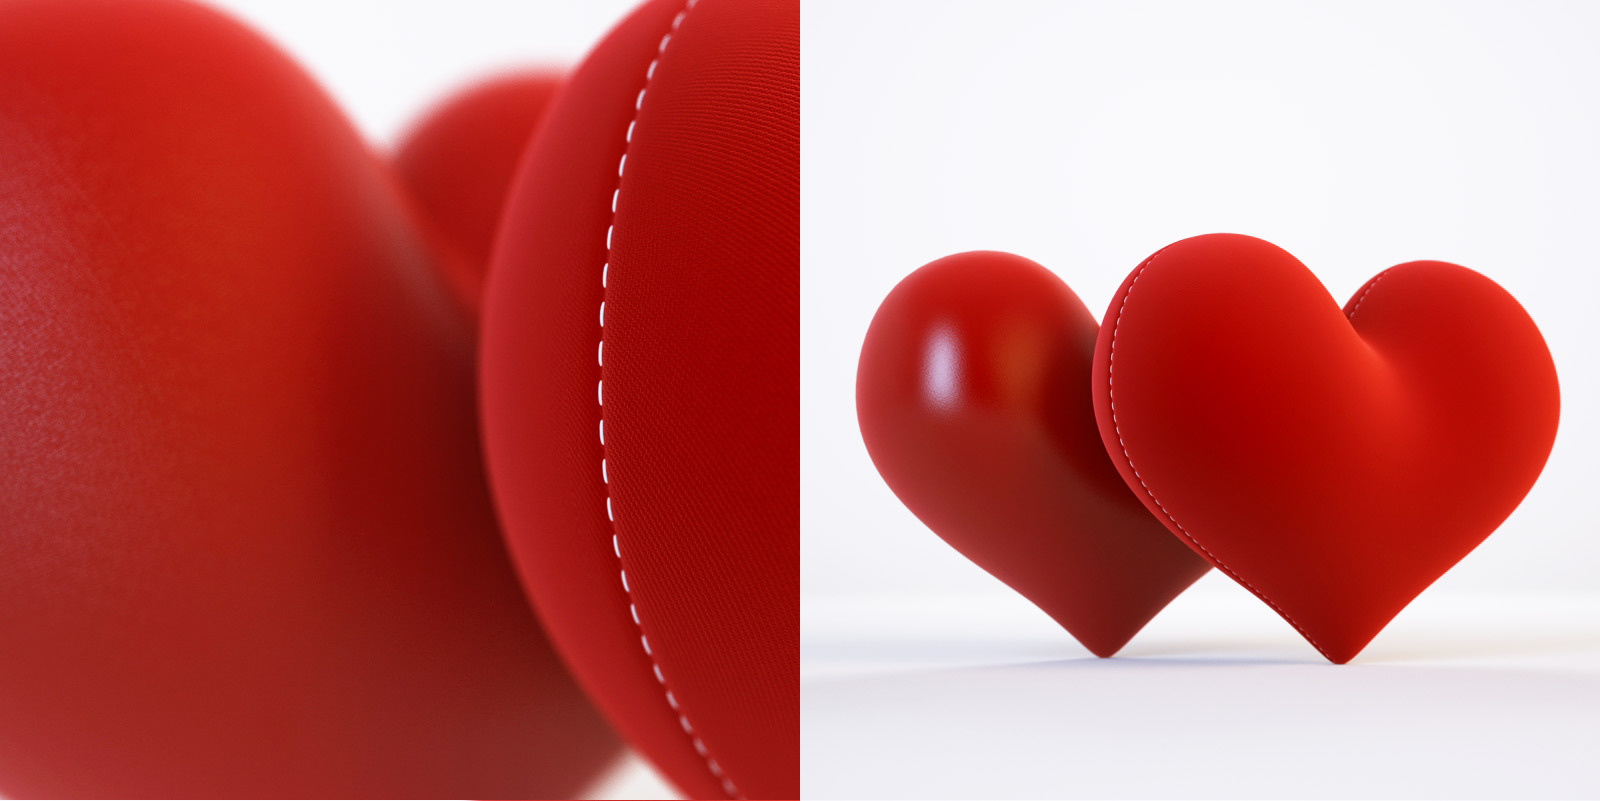 3d model and 3d scene with a heart by rnax | 3DOcean